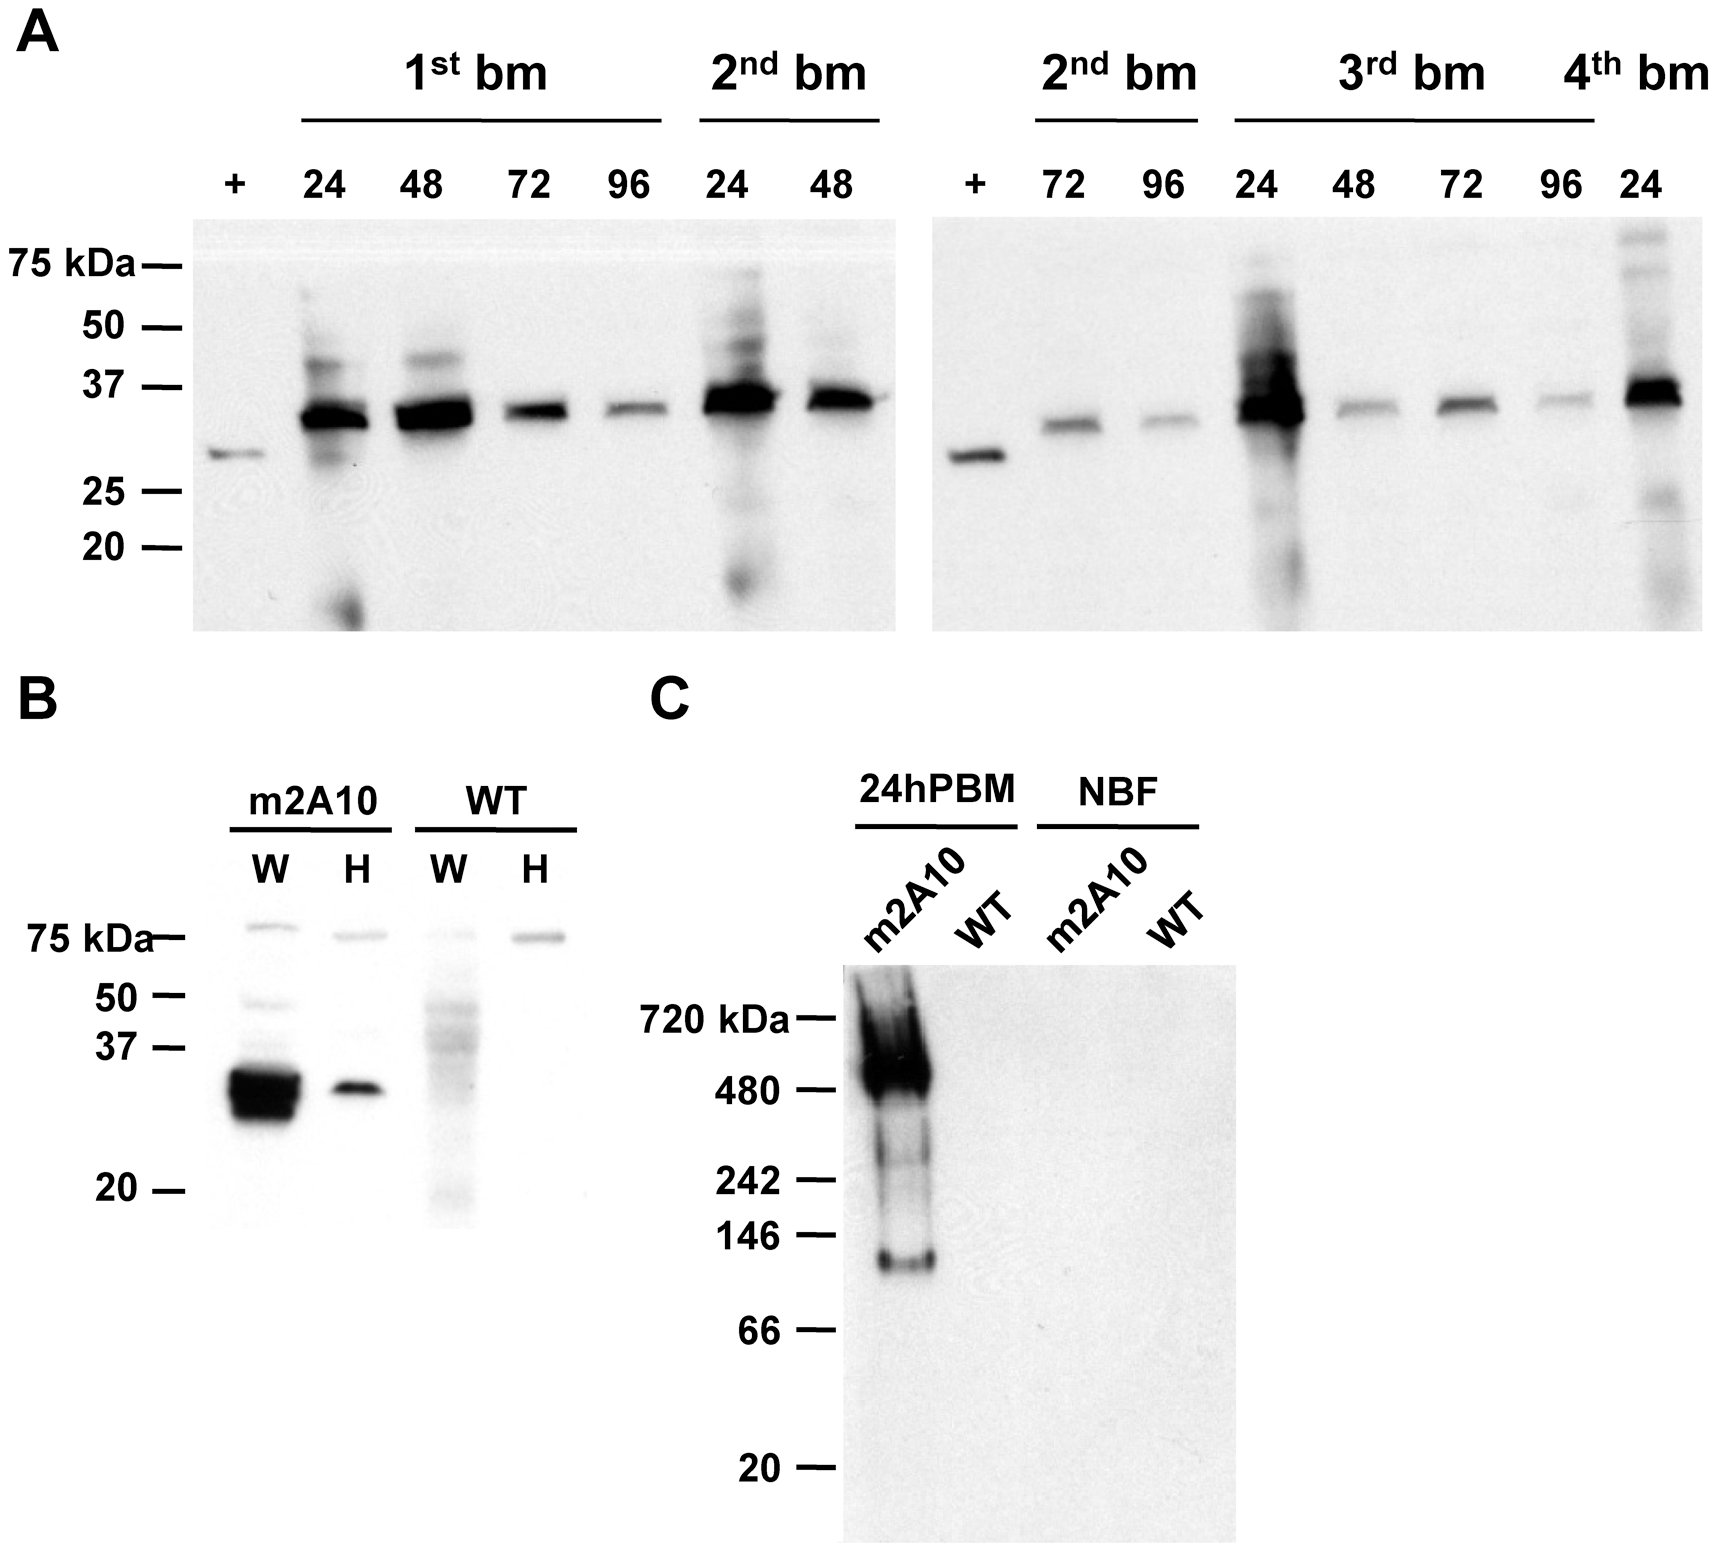 Bloodmeal-induced expression of m2A10 scFv.